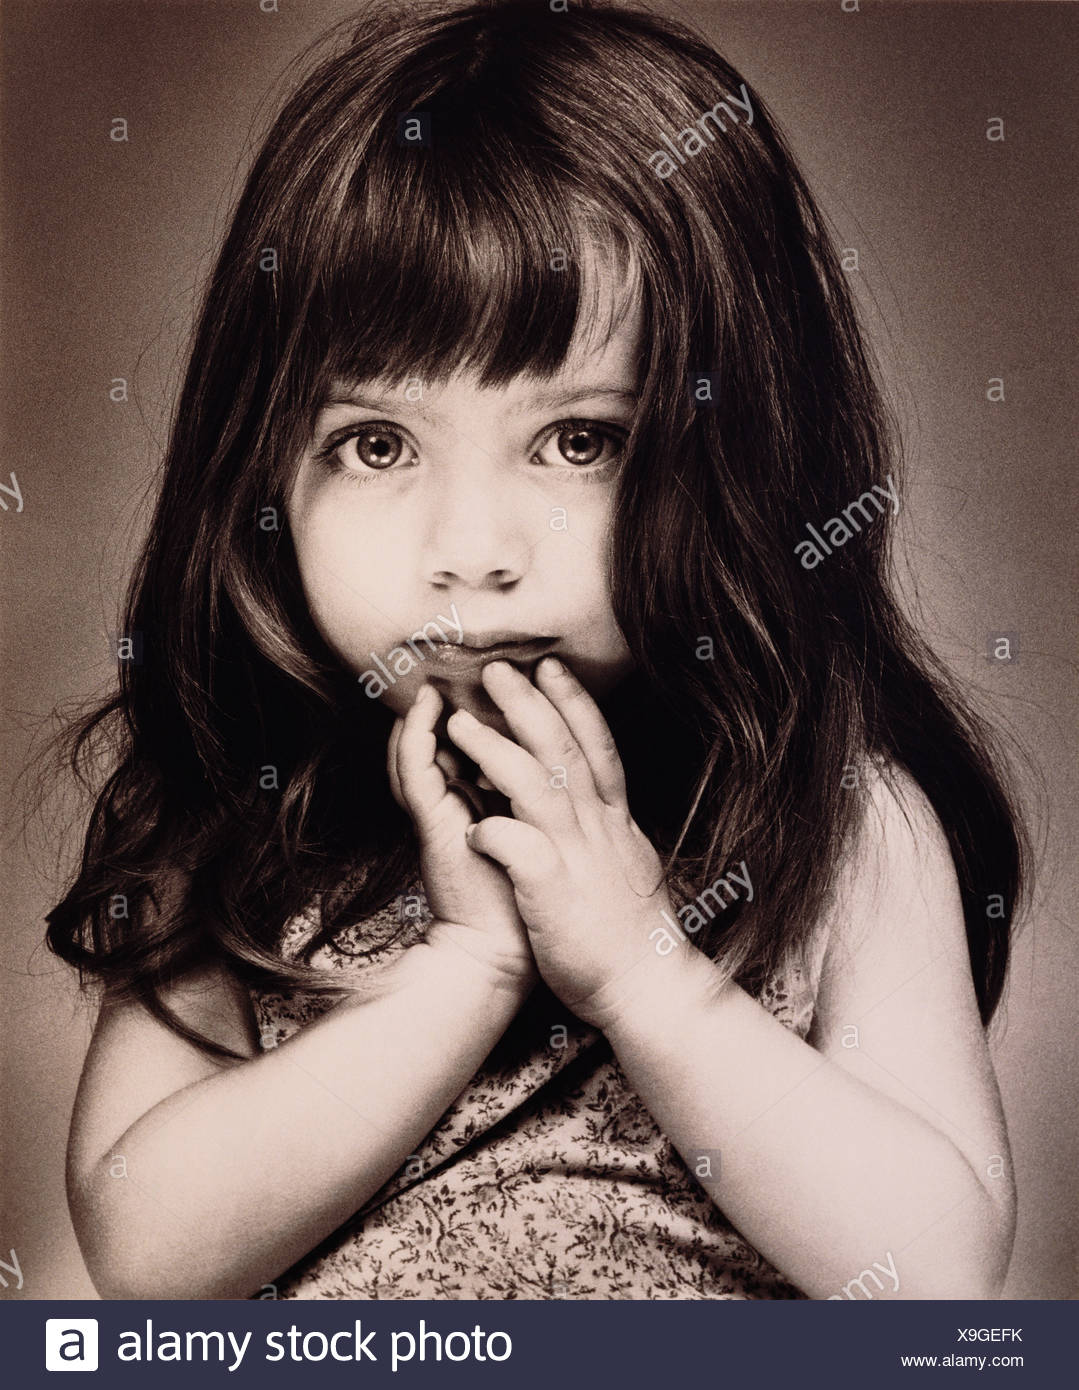 Children. Close-up portrait of a little girl. - Stock Image